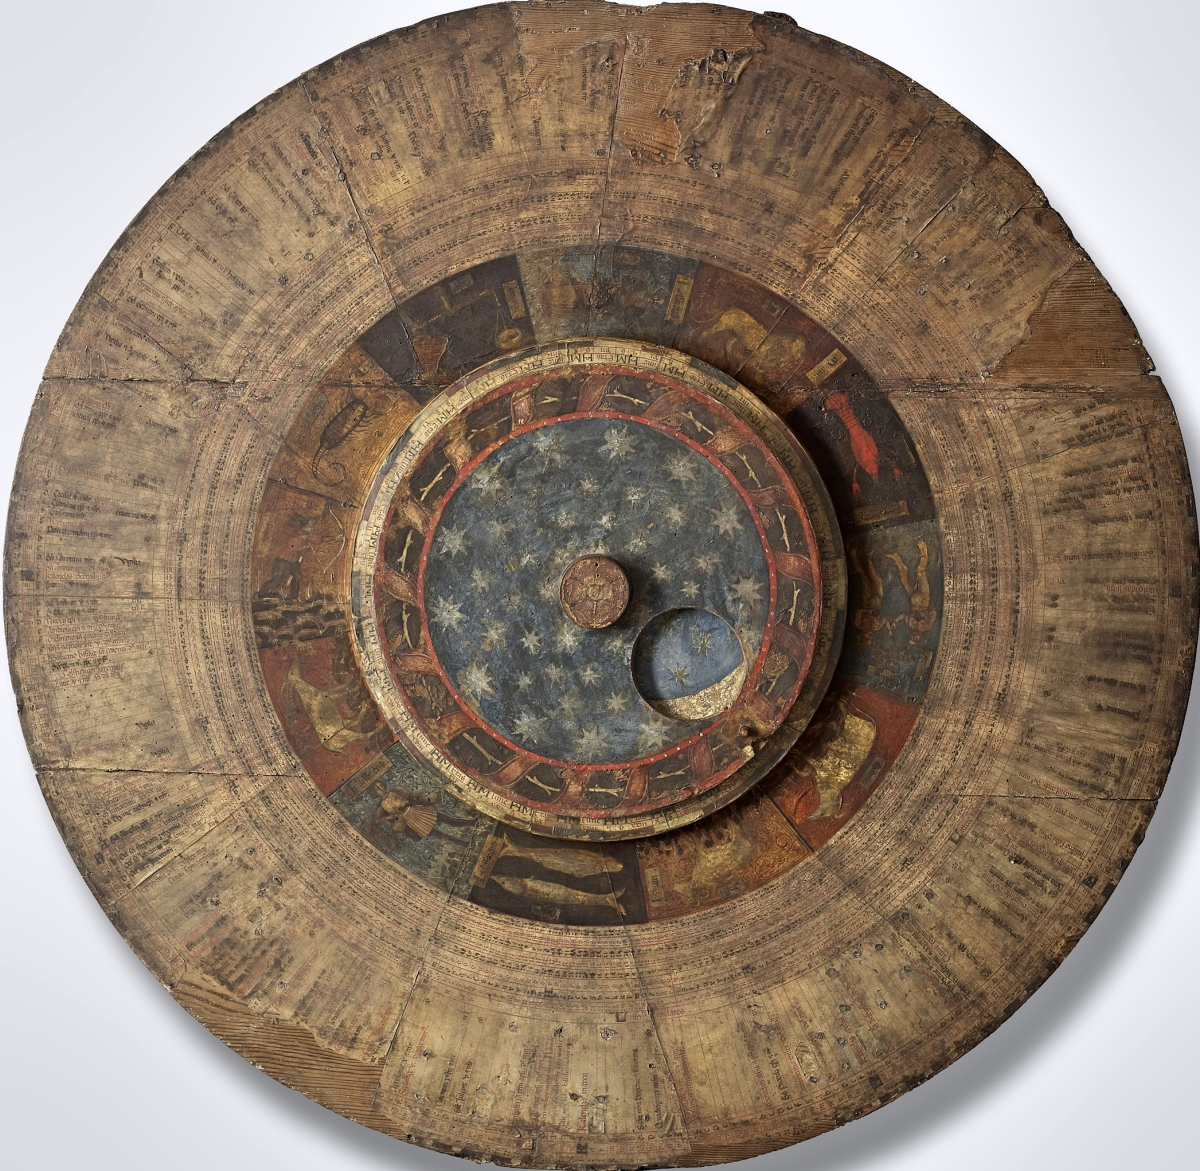 San Zeno Astrolabe, Italy, Verona, circa 1455, illuminated for the Abbey of San Zeno by an anonymous Lombard artist, private collection of Richard Cloward. Image courtesy of Map & Atlas Museum of La Jolla, Michael Stone, founder.